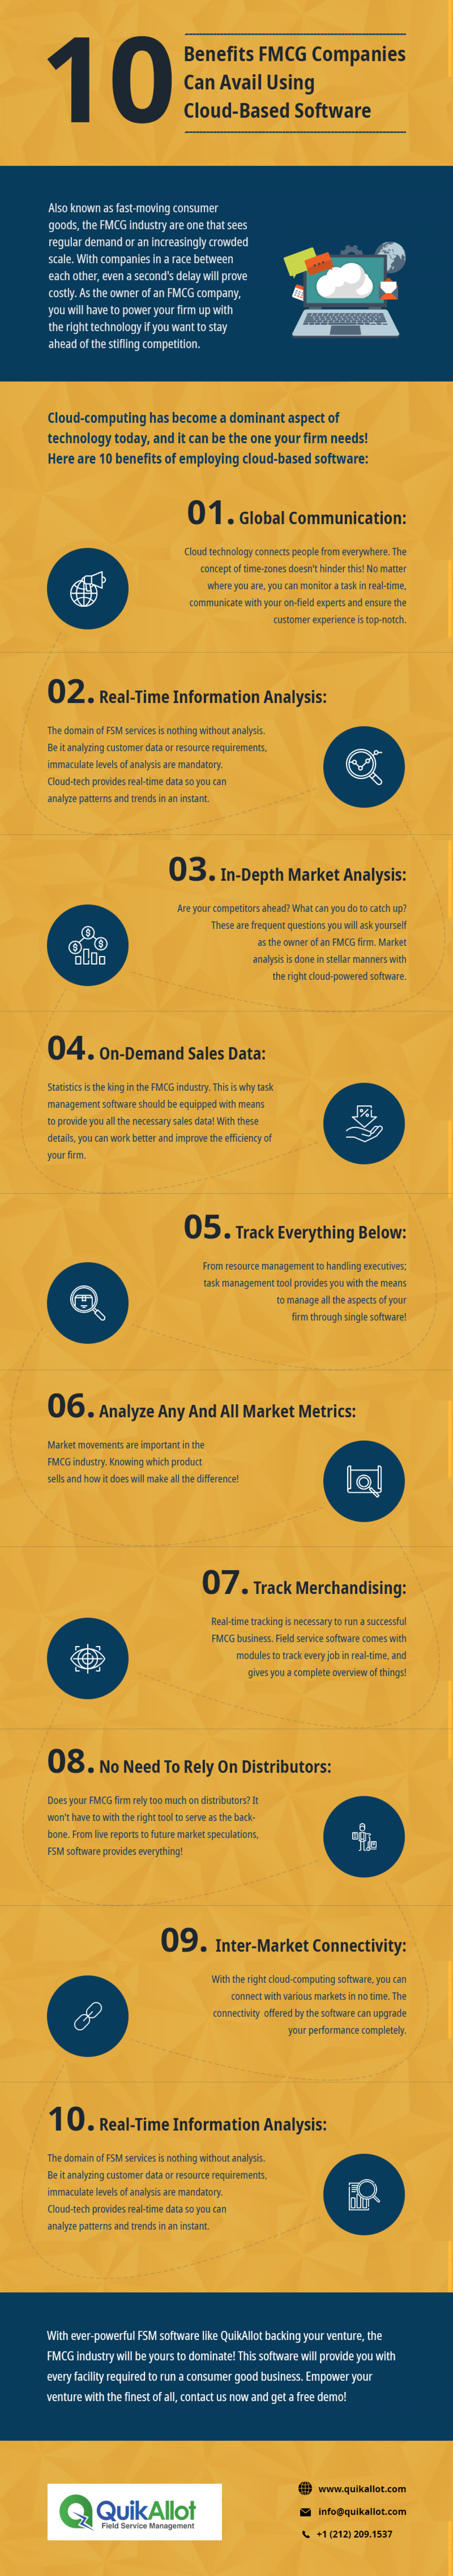 How The Right Cloud Technology-Powered Software Can Help An FMCG Company Infographic